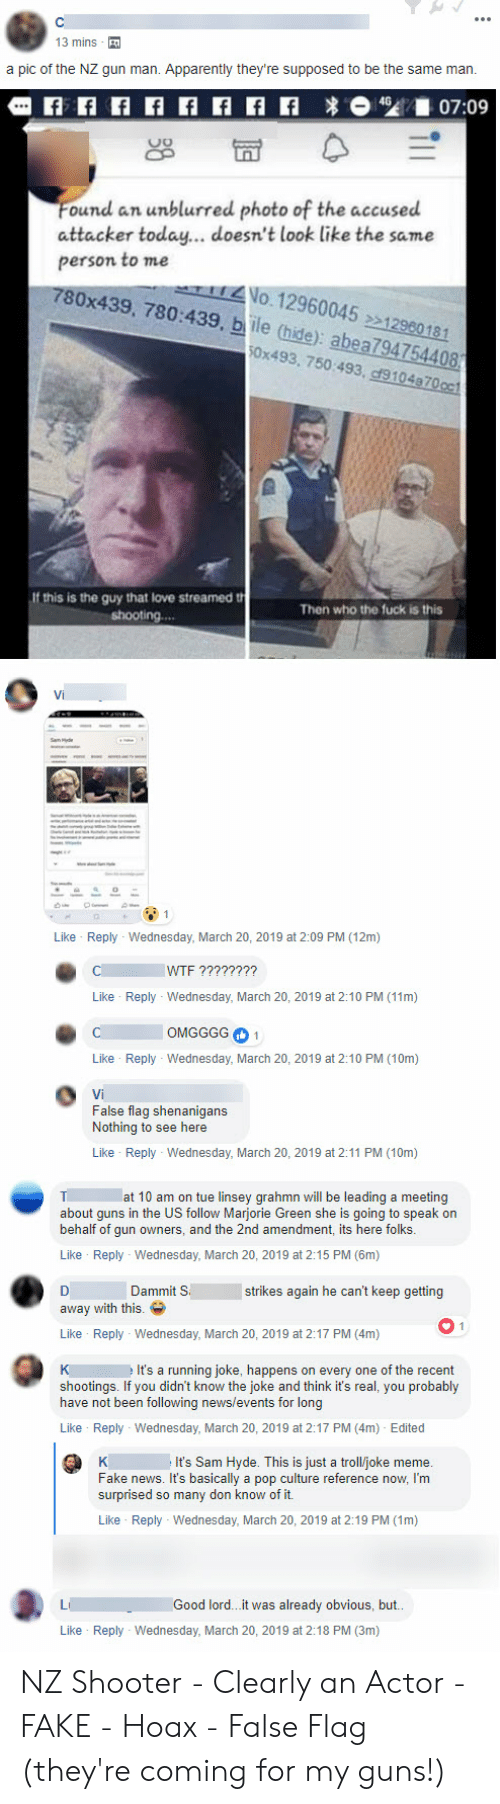 Troll Joke: 13 mins  a pic of the NZ gun man. Apparently they're supposed to be the same marn.  ound an unblurred photo of the accused  attacker today... doesn't look like the same  person to me  780x439, 780:439, bile (hide): abea 94754408  No.12960045 12980181  0x493, 750:493, cf9104870oc  this is the guy that love streamed t  Then who the fuck is this  Like Reply Wednesday, March 20, 2019 at 2:09 PM (12m)  C IYriz  Like Reply Wednesday, March 20, 2019 at 2:10 PM (11m)  C OMGGGG1  Like Reply Wednesday, March 20, 2019 at 2:10 PM (10m)  Vi  False flag shenanigans  Nothing to see here  Like Reply- Wednesday, March 20, 2019 at 2:11 PM (10m)  T at 10 am on tue linsey grahmn will be leading a meeting  about guns in the US follow Marjorie Green she is going to speak on  behalf of gun owners, and the 2nd amendment, its here folks  Like Reply Wednesday, March 20, 2019 at 2:15 PM (6m)  Dammit Sstrikes again he can't keep getting  away with this.  Like Reply Wednesday, March 20, 2019 at 2:17 PM (4m)  K It's a running joke. happens on every one of the recent  shootings. If you didn't know the joke and think it's real, you probably  have not been following news/events for long  Like Reply Wednesday, March 20, 2019 at 2:17 PM (4m) Edited  It's Sam Hyde. This is just a troll/joke meme.  Fake news. It's basically a pop culture reference now, I'm  surprised so many don know of it.  Like Reply Wednesday, March 20, 2019 at 2:19 PM (1m)  LiGood lord.. it was already obvious, but  Like Reply Wednesday, March 20, 2019 at 2:18 PM (3m) NZ Shooter - Clearly an Actor - FAKE - Hoax - False Flag (they're coming for my guns!)